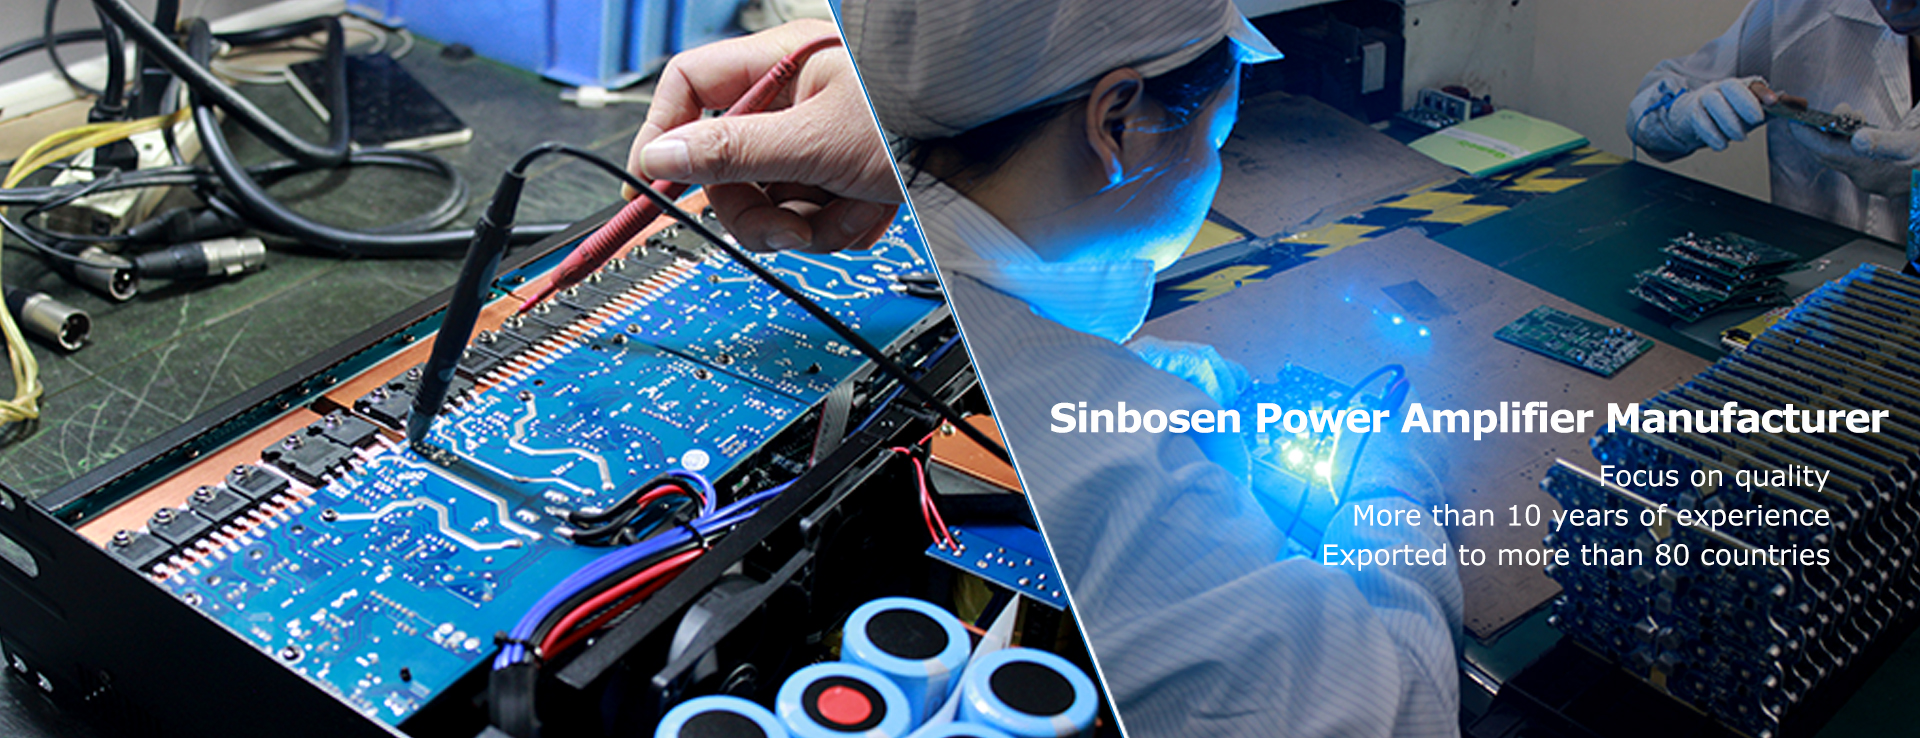 Sinbosen Audio Amplifier Manufacturer More than 10 years of experience